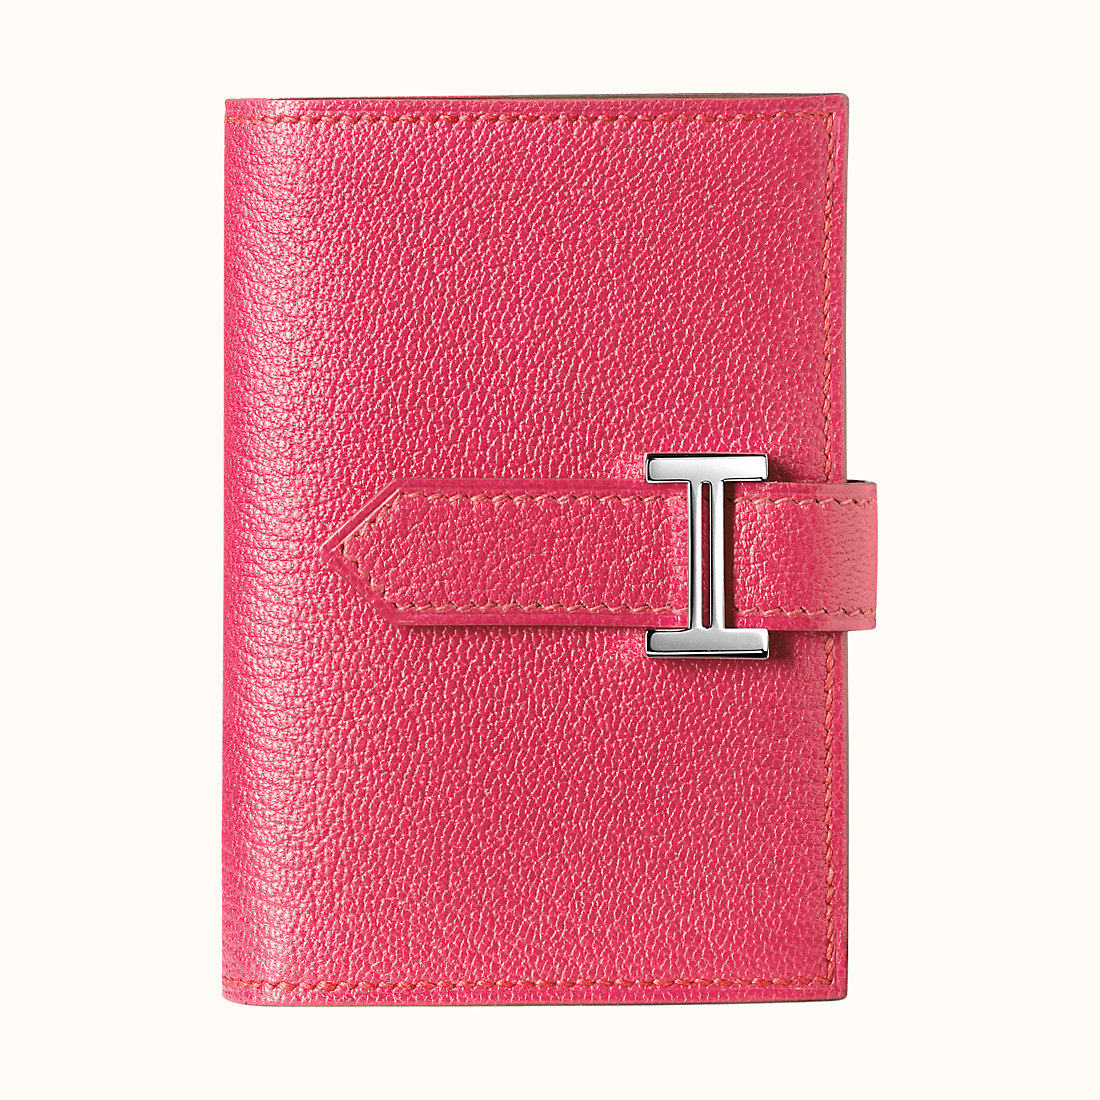 臺灣新竹市愛馬仕短款錢包 Hermes Bearn mini wallet CKU5 Rose Lipstick